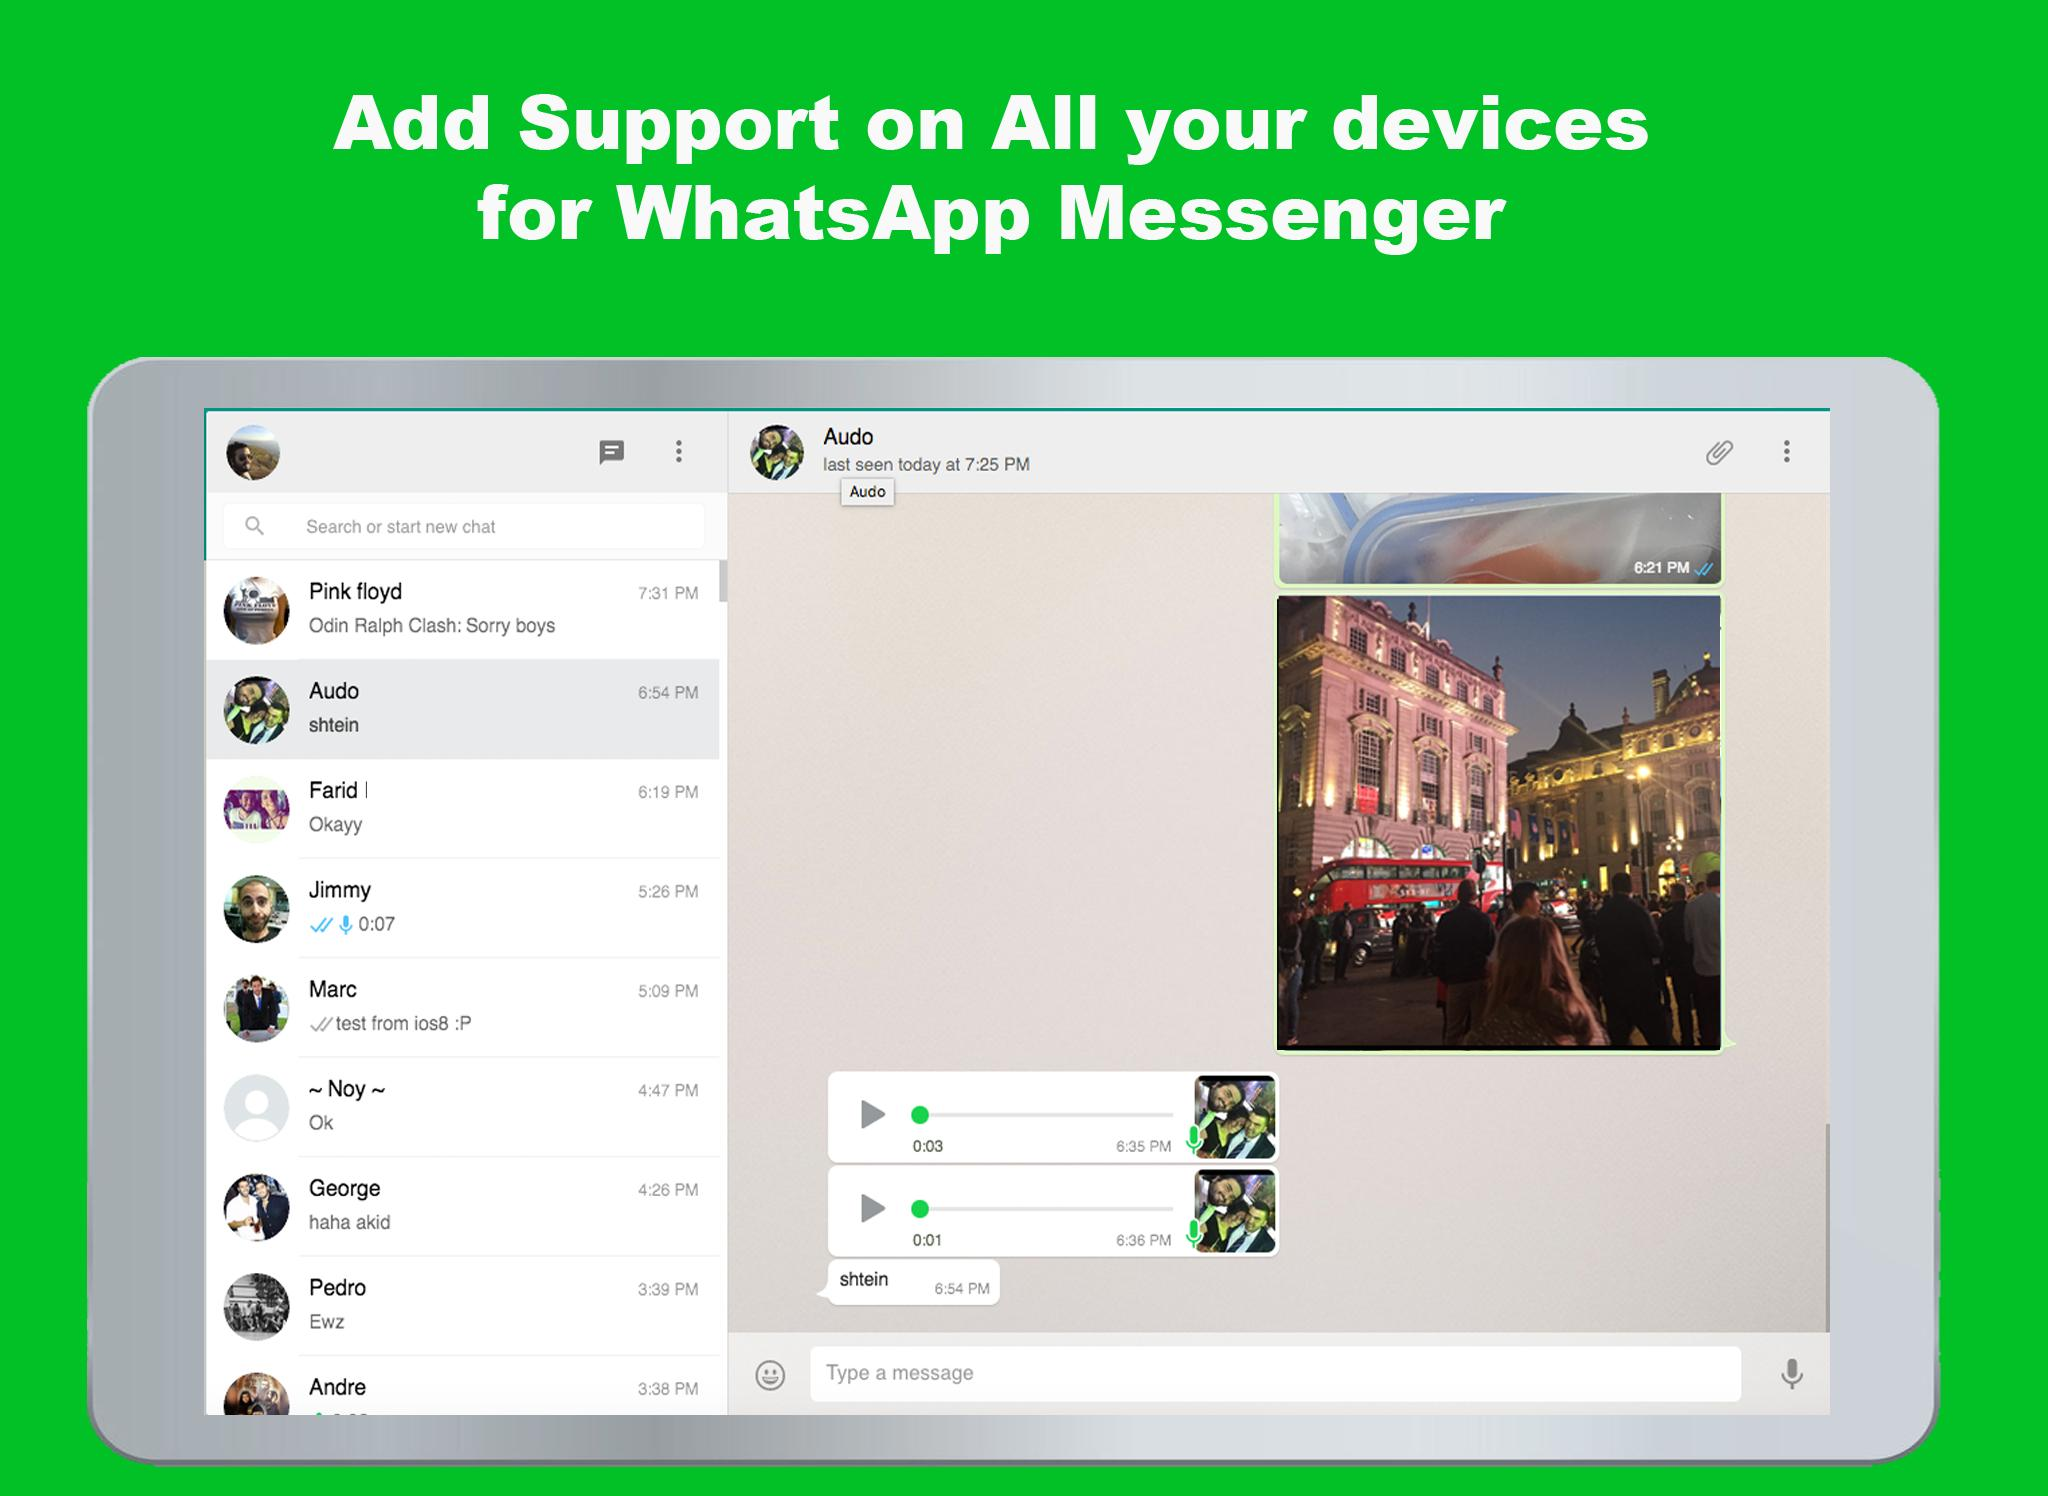 whatsapp messenger apk for android 2.3.6 download free full version